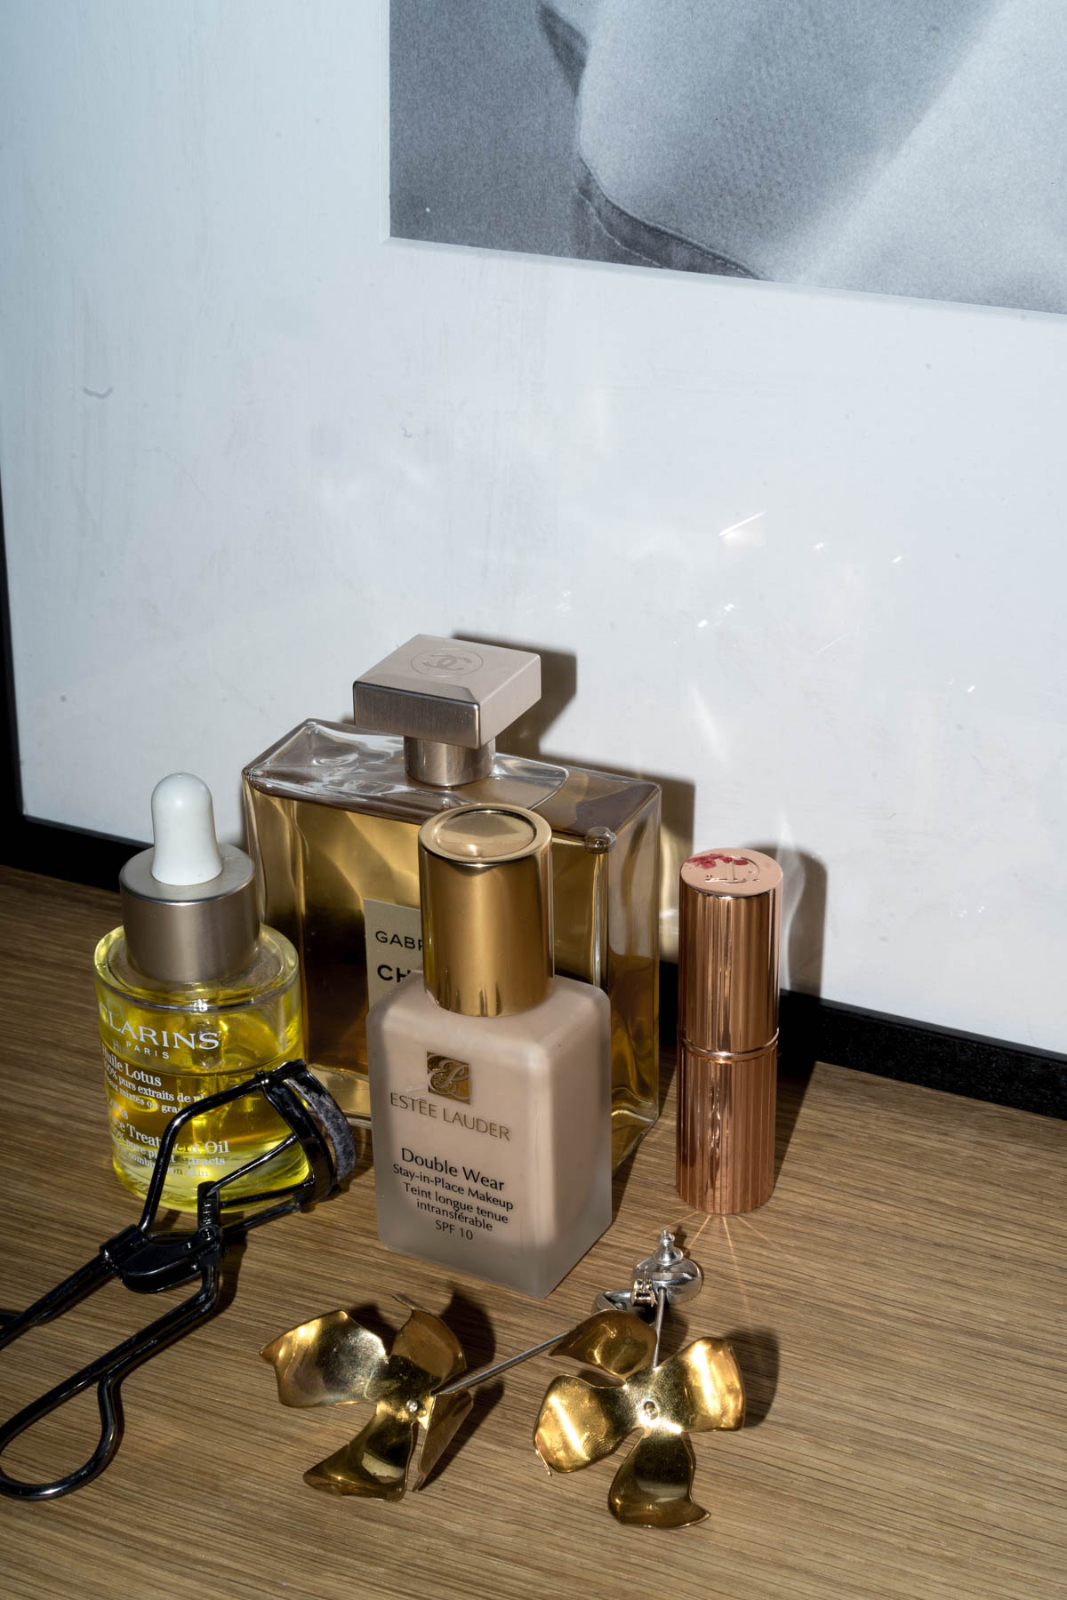 Beauty: My Holy Grail Beauty Products & Accessoires